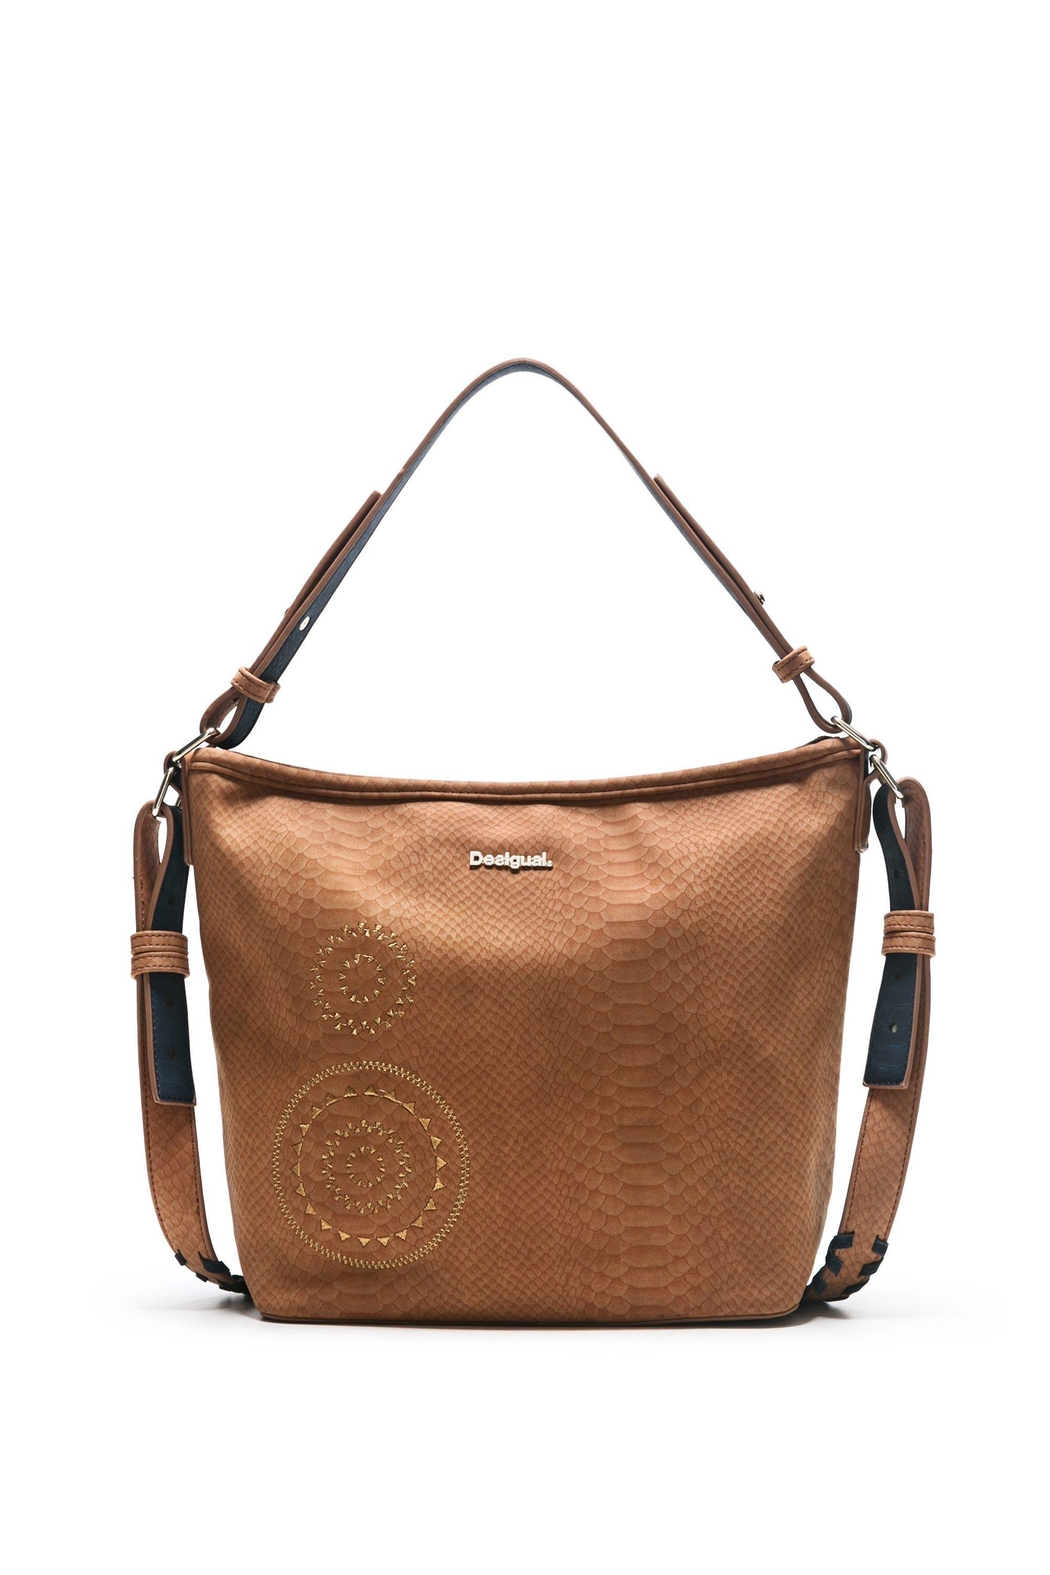 DESIGUAL Brown Shoulder Bag - Main Image